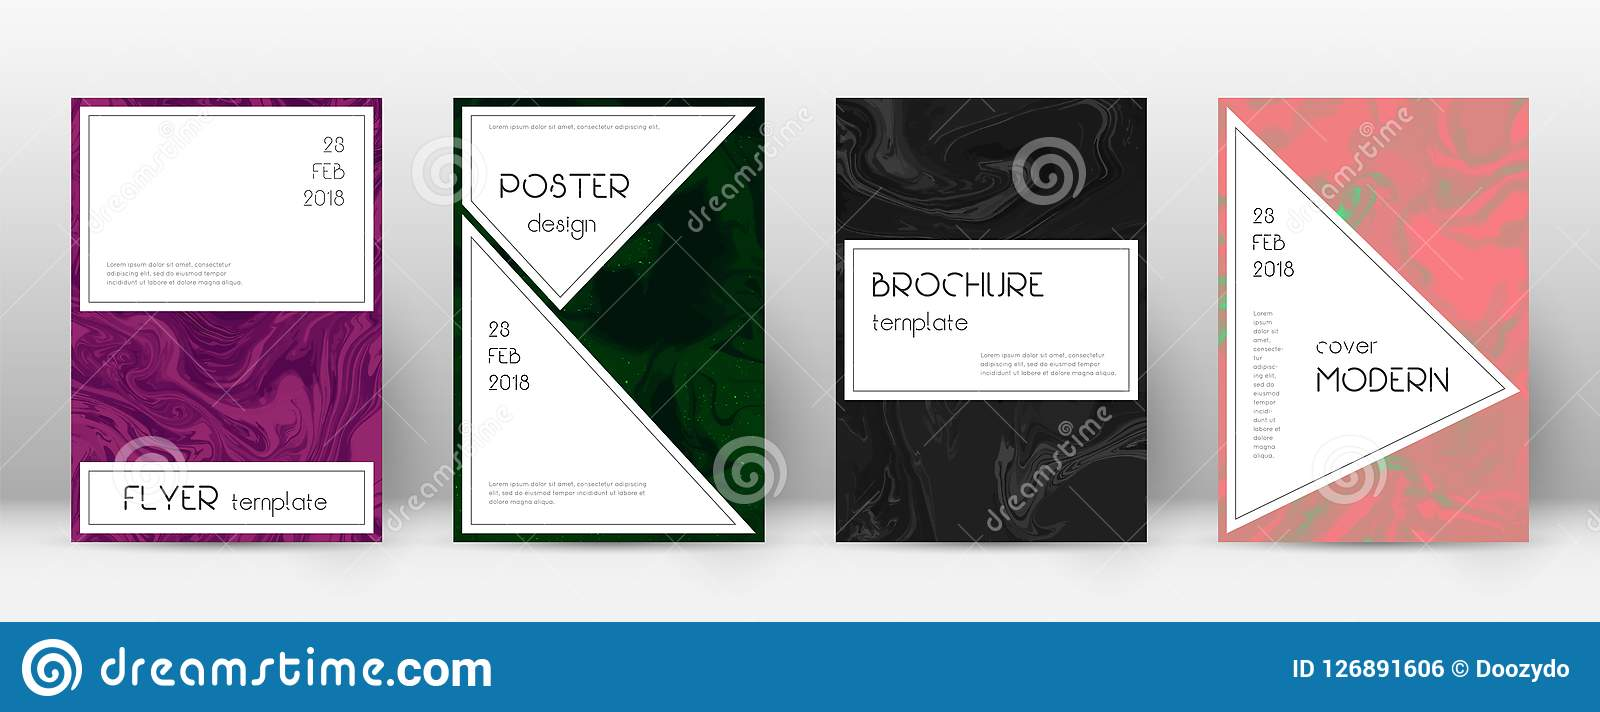 Trendy Poster Designs: Abstract Cover. Amazing Design Template. Suminagashi